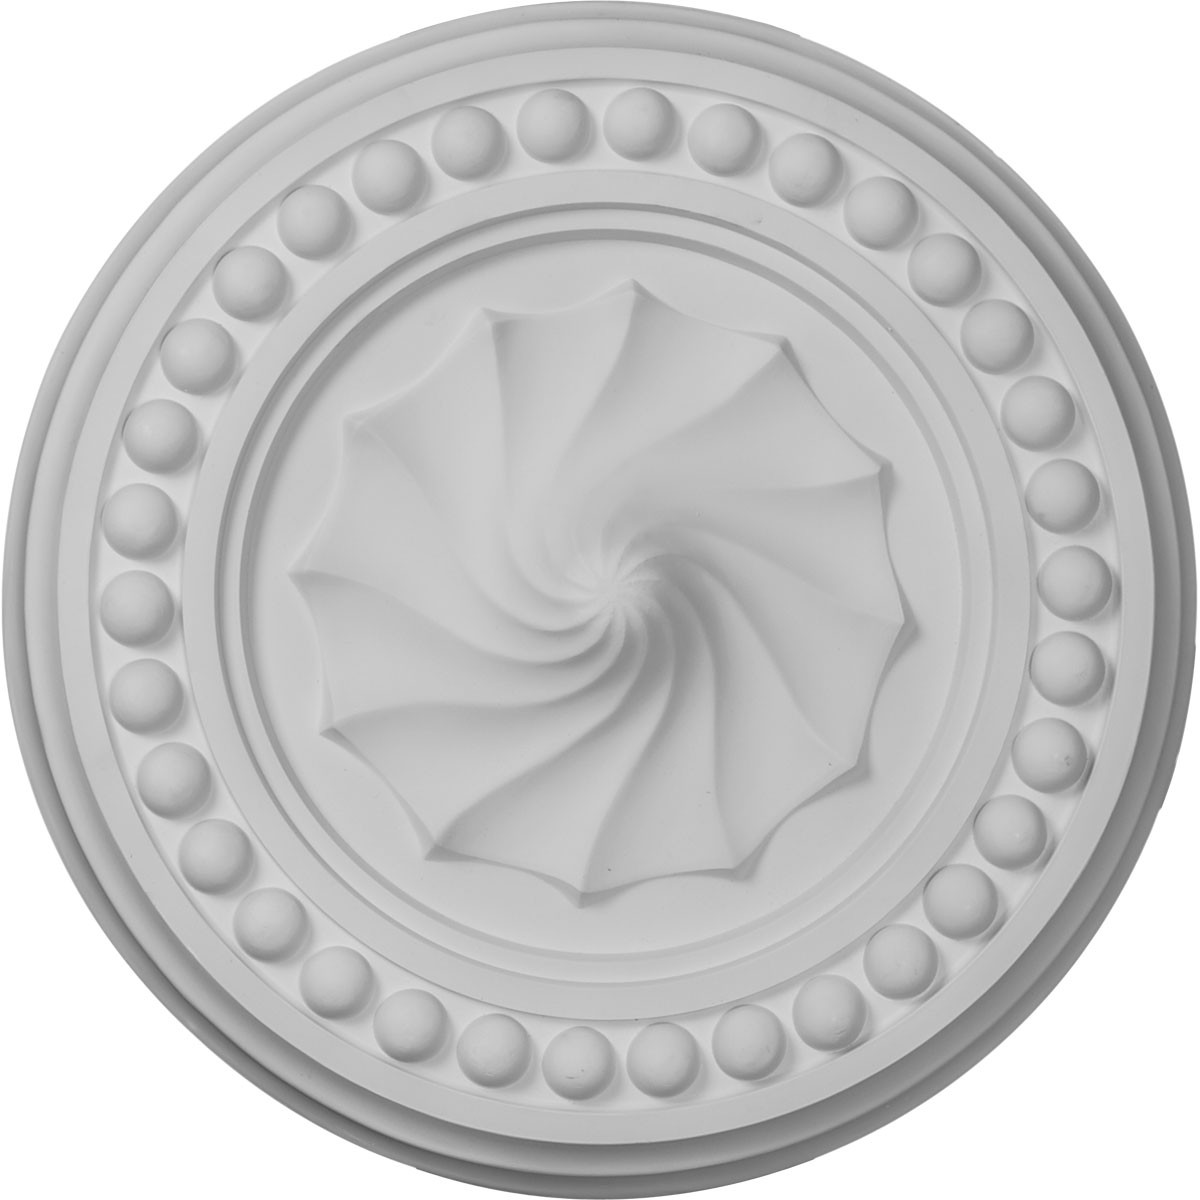 "EM-CM15FO - 15 3/4""OD x 2""P Foster Shell Ceiling Medallion (Fits Canopies up to 9 5/8"")"